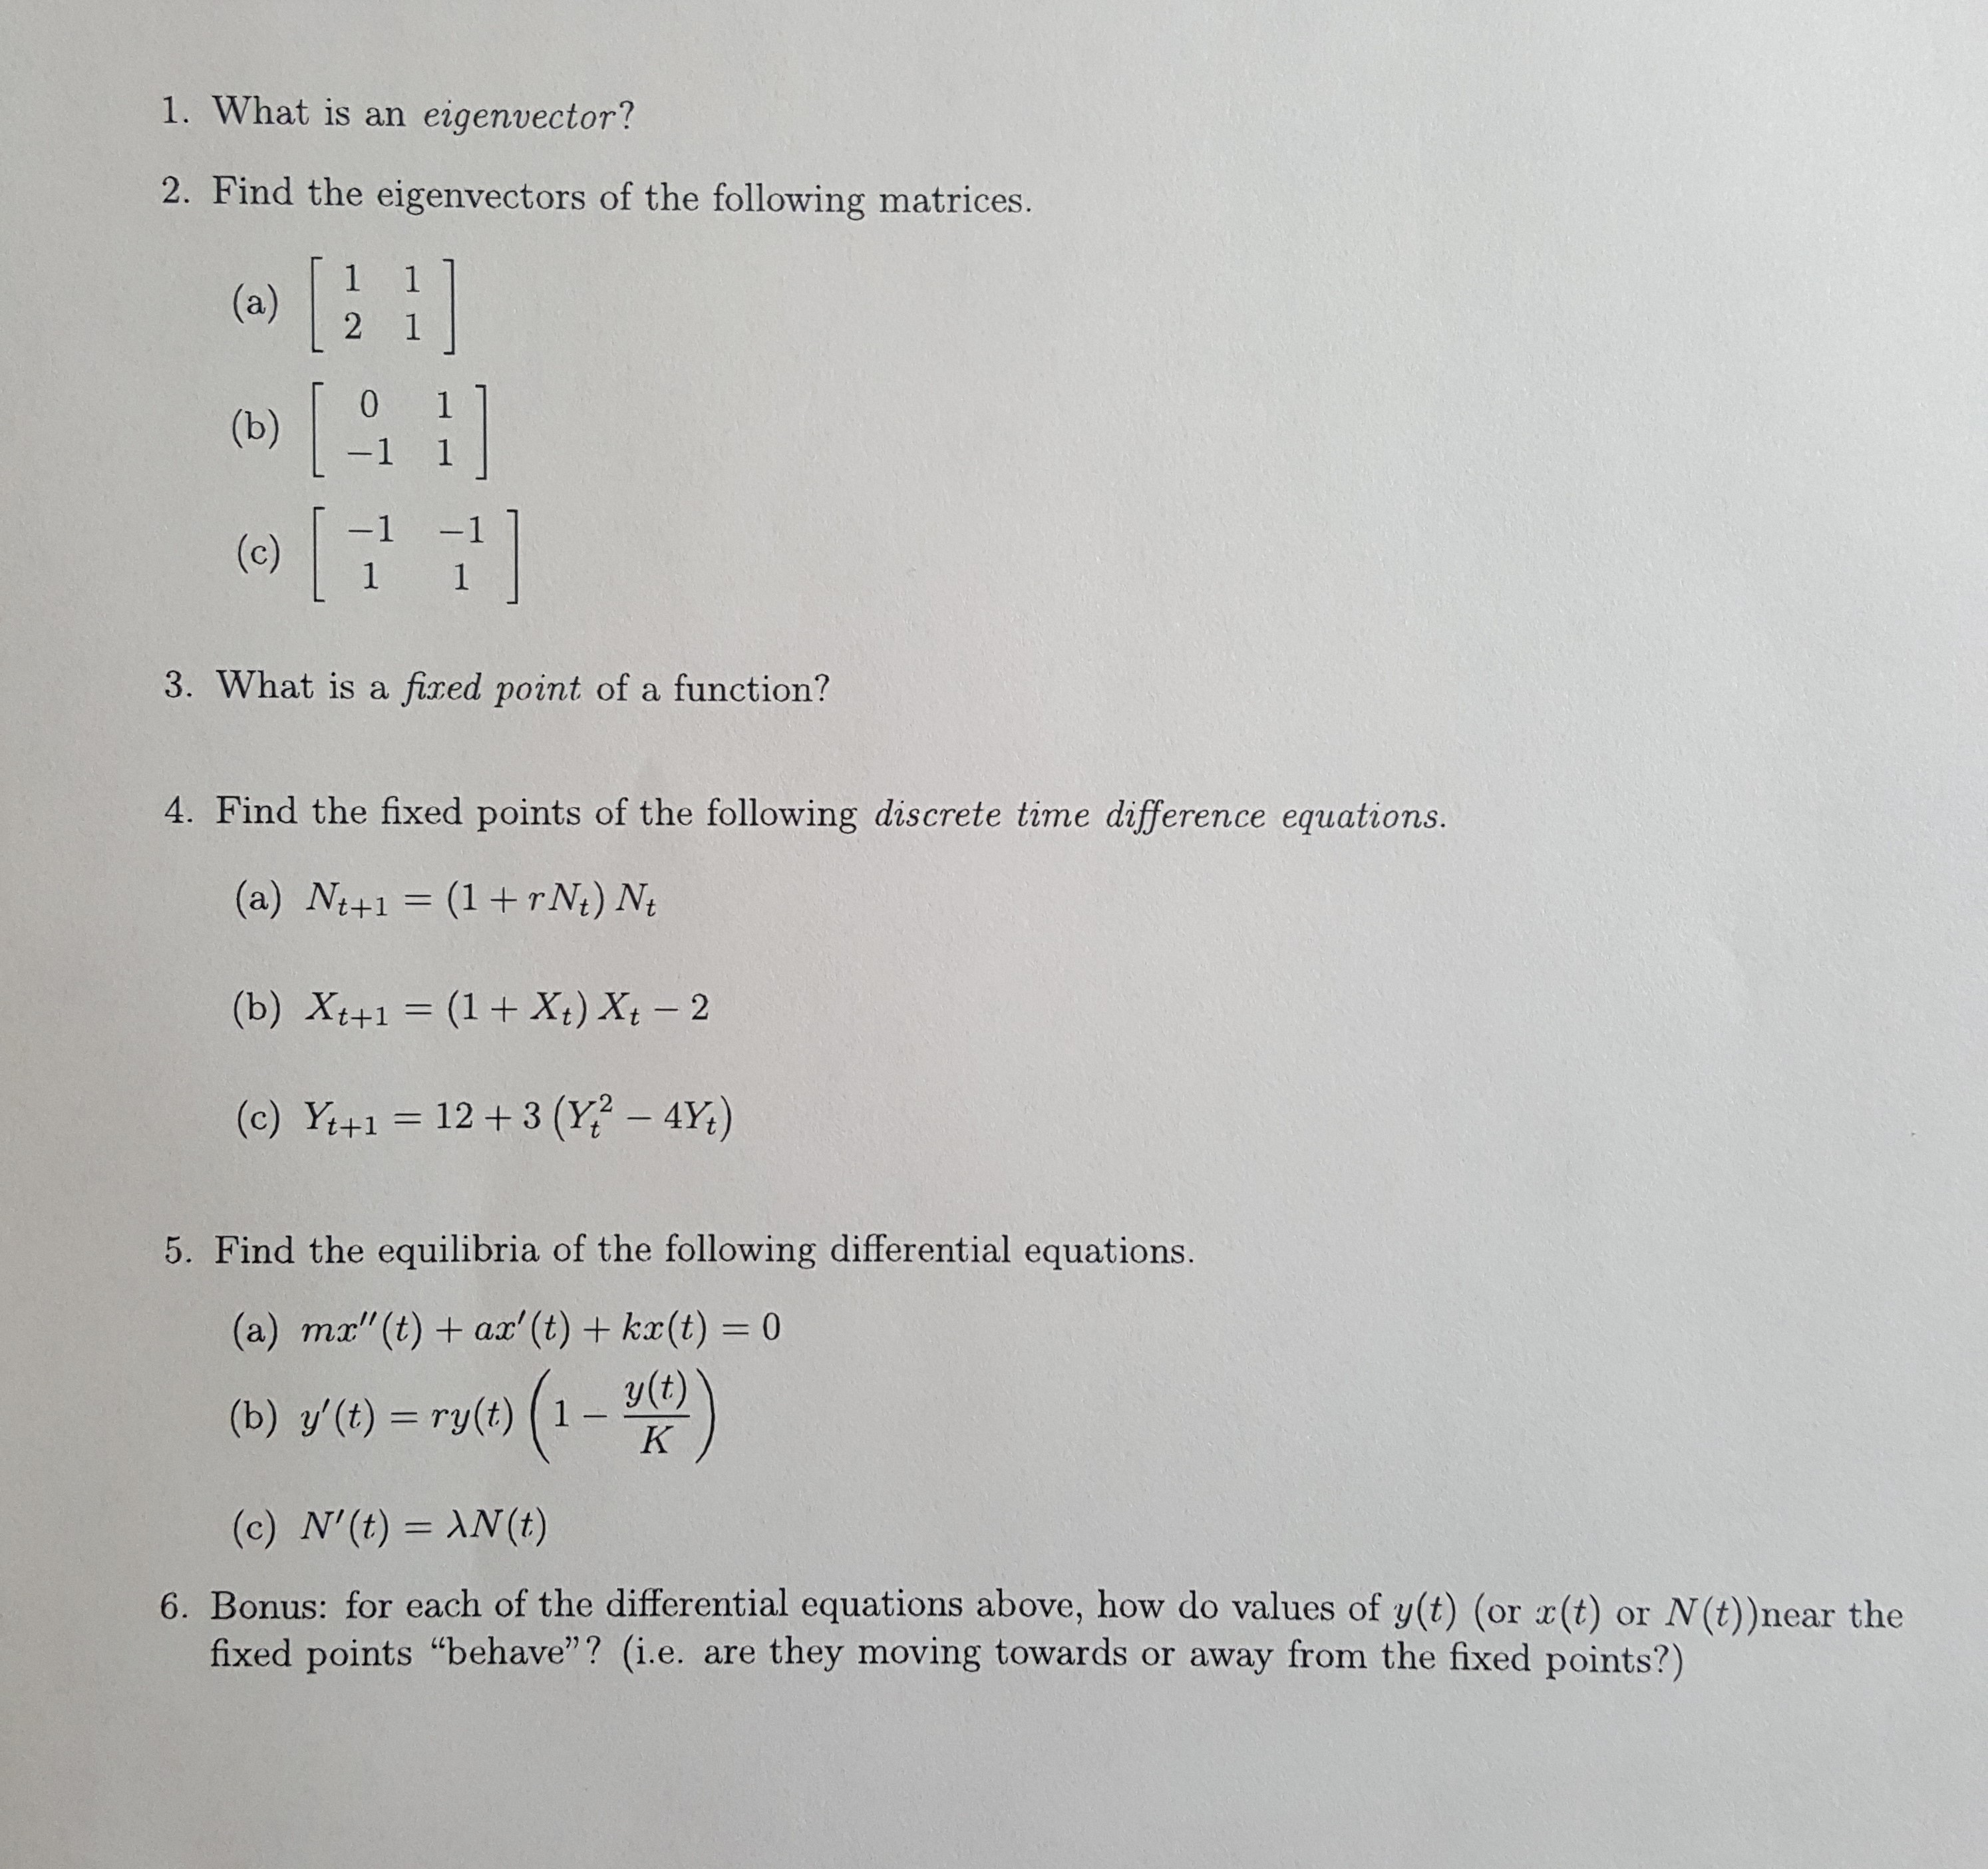 """1. What is an eigenvector? 2. Find the eigenvectors of the following matrices. (a) 2 1 [ 0 (b) -1 1 -1 (c) 1 1 3. What is a fixed point of a function? 4. Find the fixed points of the following discrete time difference equations. (a) Nt+1 (1+rN) Nt (b) Xt+1 (1 + X) Xt 2 12+3 (Y? - 4Y) (c) Y+1 5. Find the equilibria of the following differential equations. (a) mx""""(t) ax' (t)+ kx(t) = 0 y(t) 1 (b) y'(t) ry(t) K (c) N'(t) AN (t) 6. Bonus: for each of the differential equations above, how do values of y(t) (or x(t) fixed points """"behave""""? (i.e. are they moving towards or away from the fixed points?) or N(t))near the"""